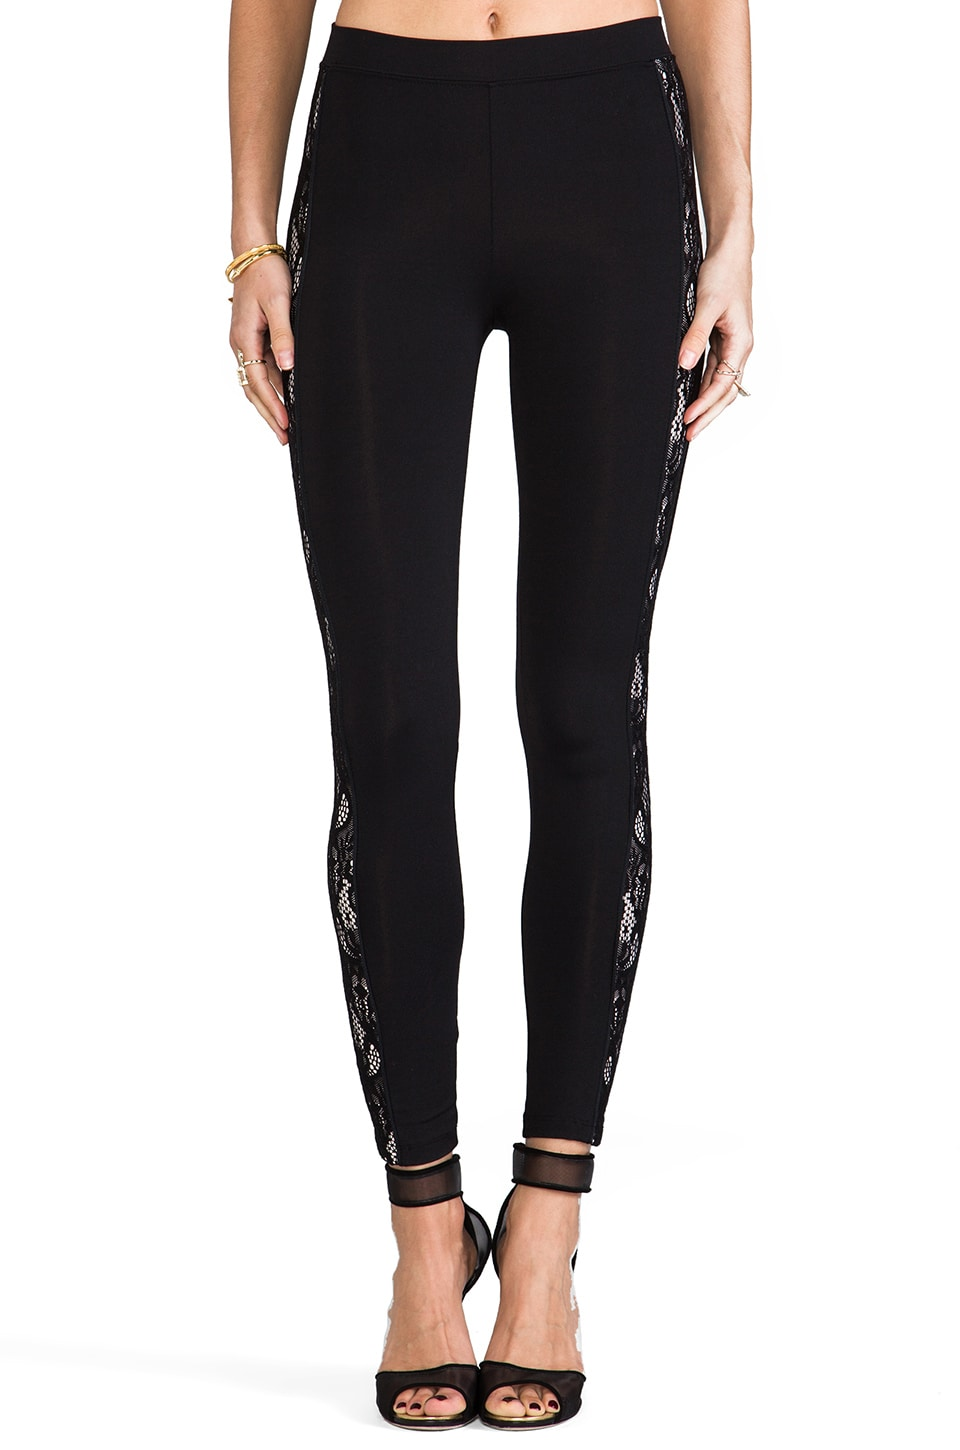 David Lerner Contrast Lace Side Panel Pant in Black/Blush